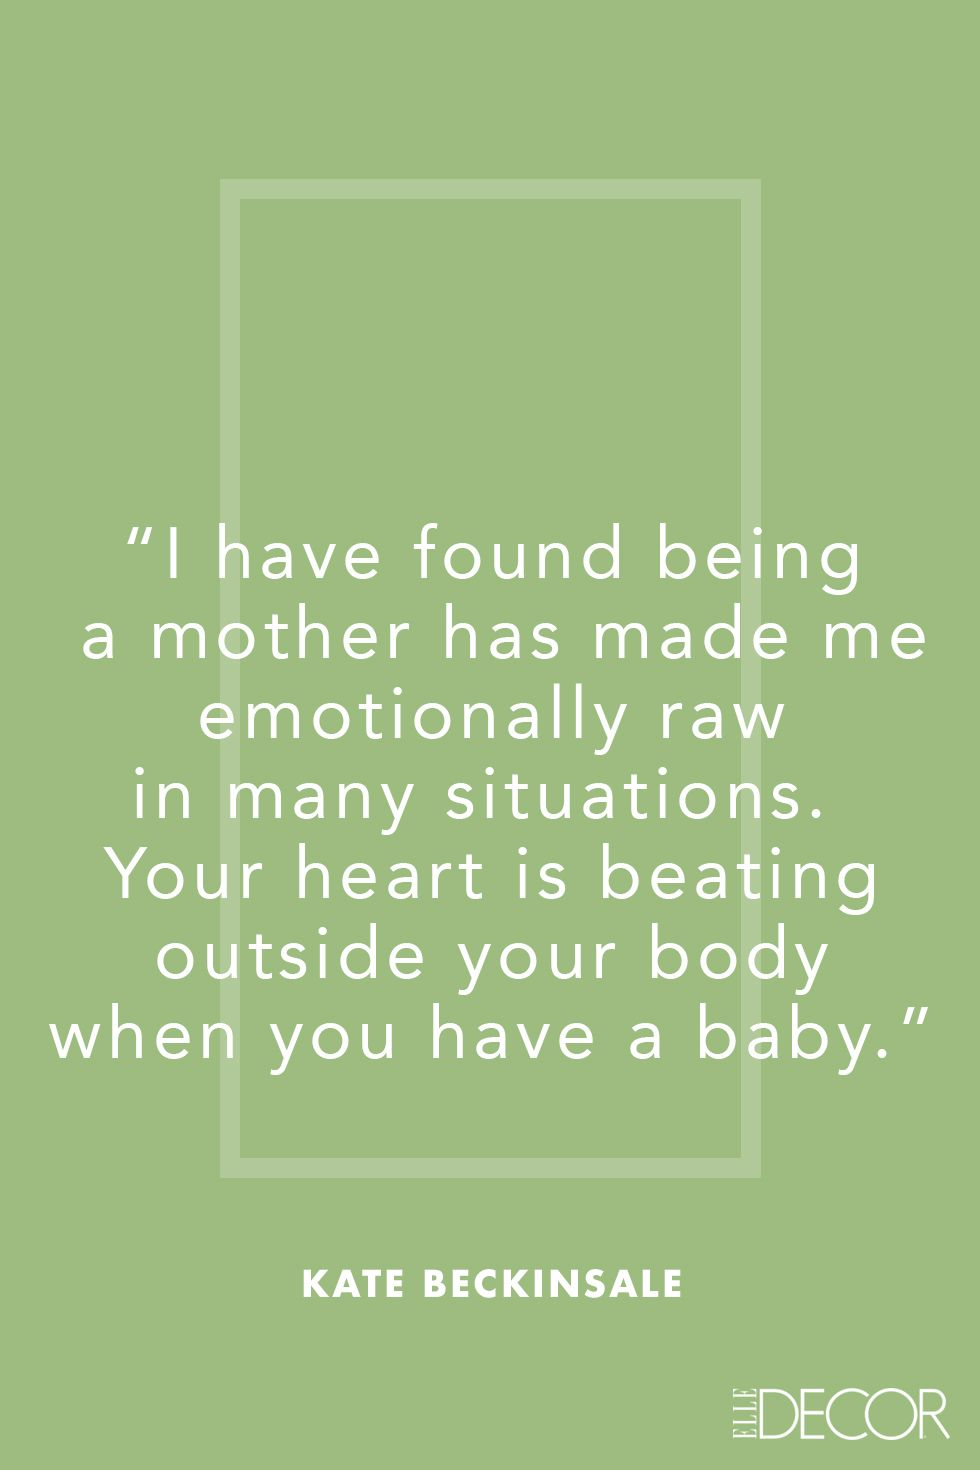 30+ Best Mother's Day Quotes   Meaningful Quotes from Famous Moms